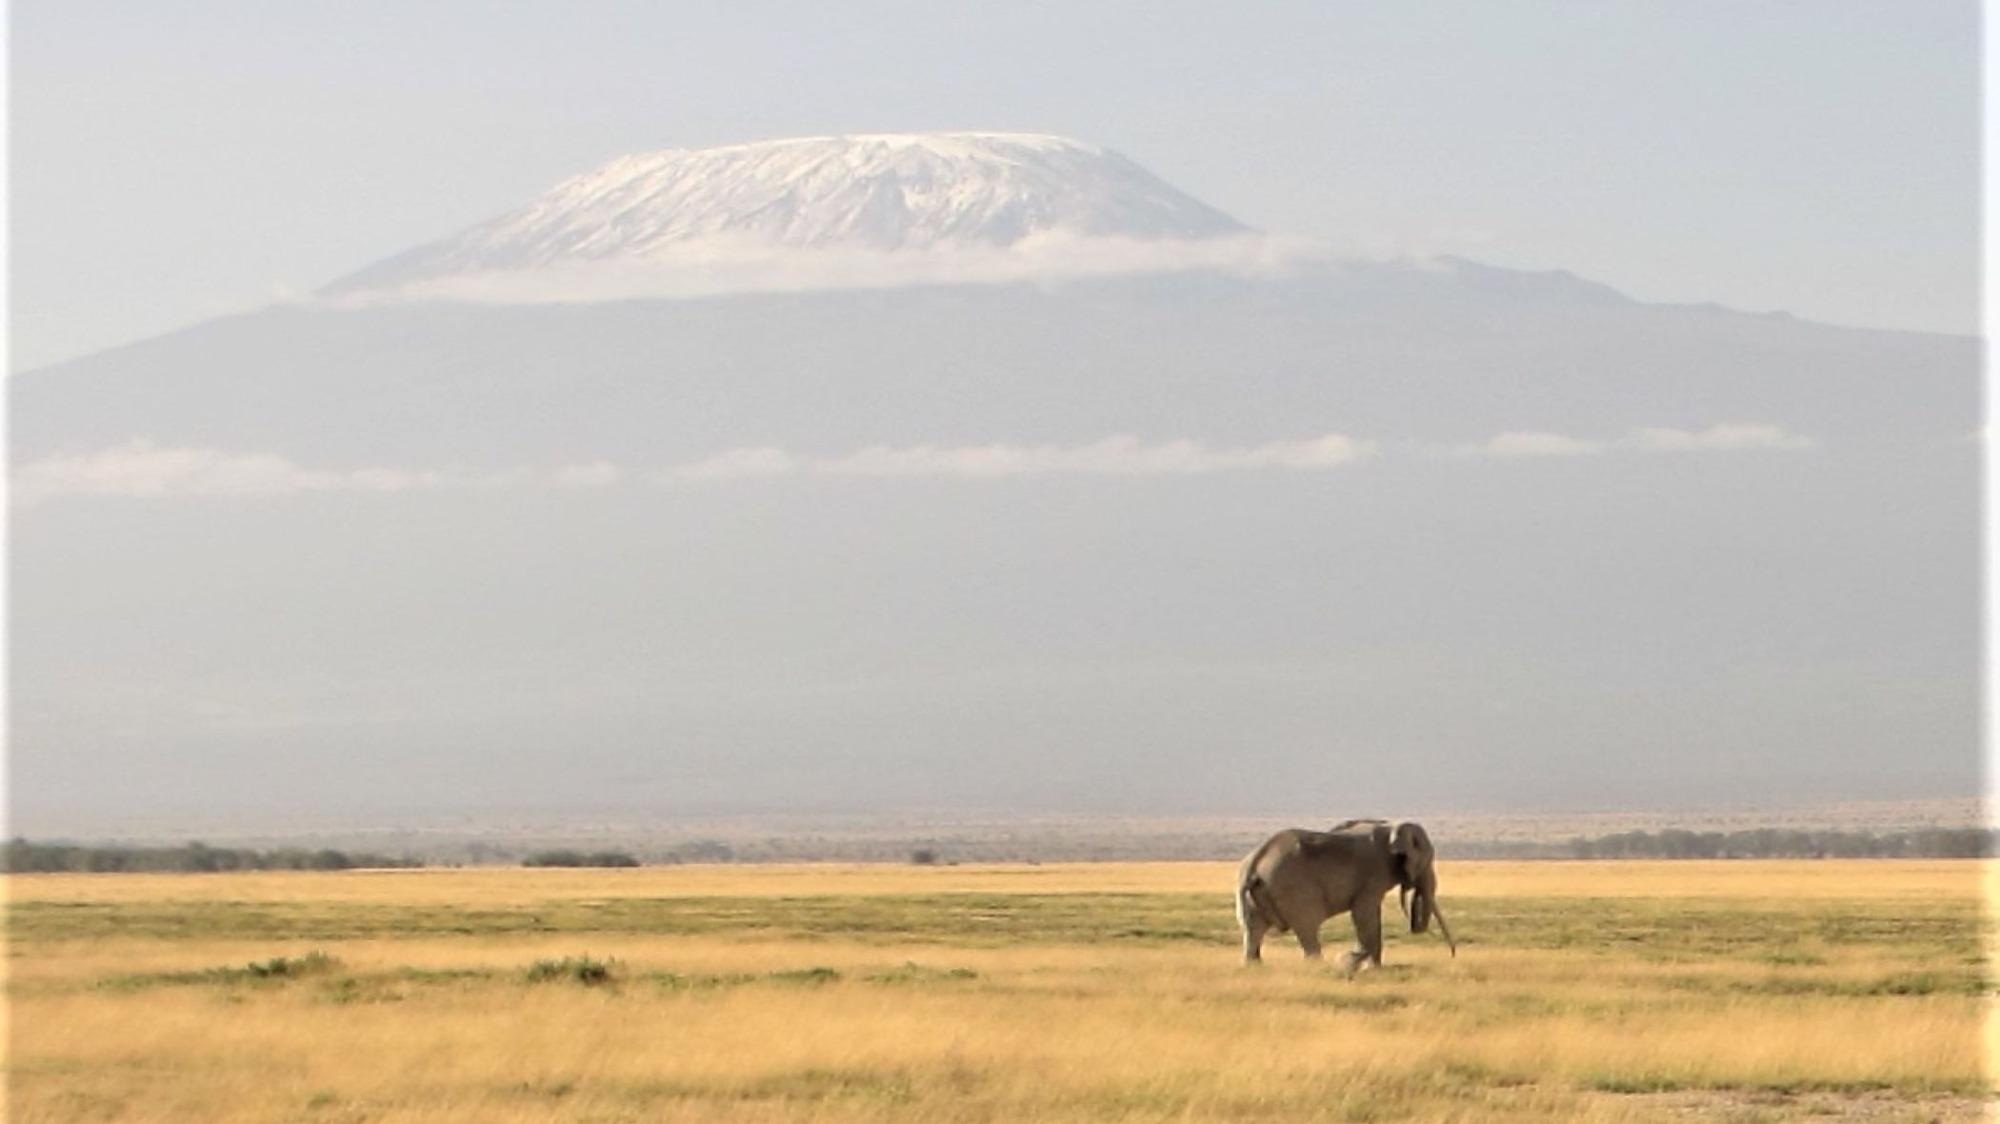 Amboseli National Park, Kenya: Due to climate change, glaciers on the Kilimanjaro are retreating. Plants and animals in the valleys below, however, are dependent on water from the glacier.